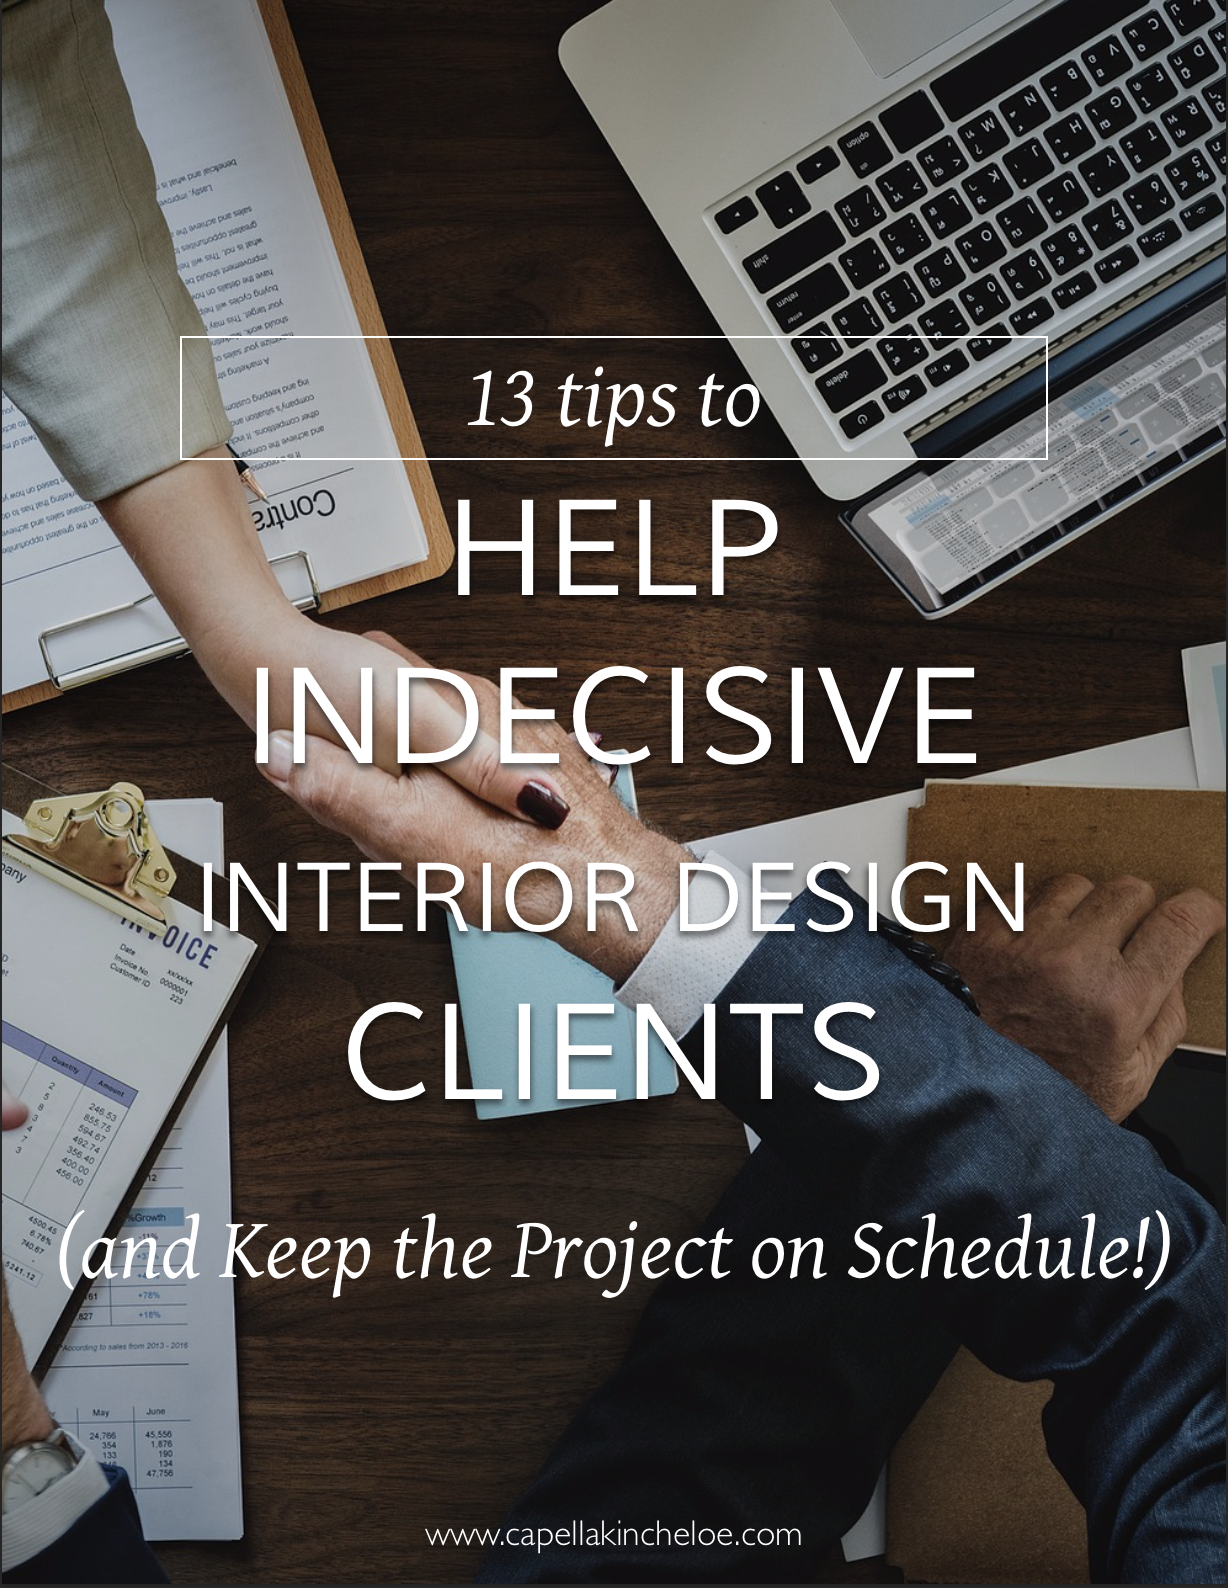 13 Ways To Help Indecisive Clients Learn Interior Design